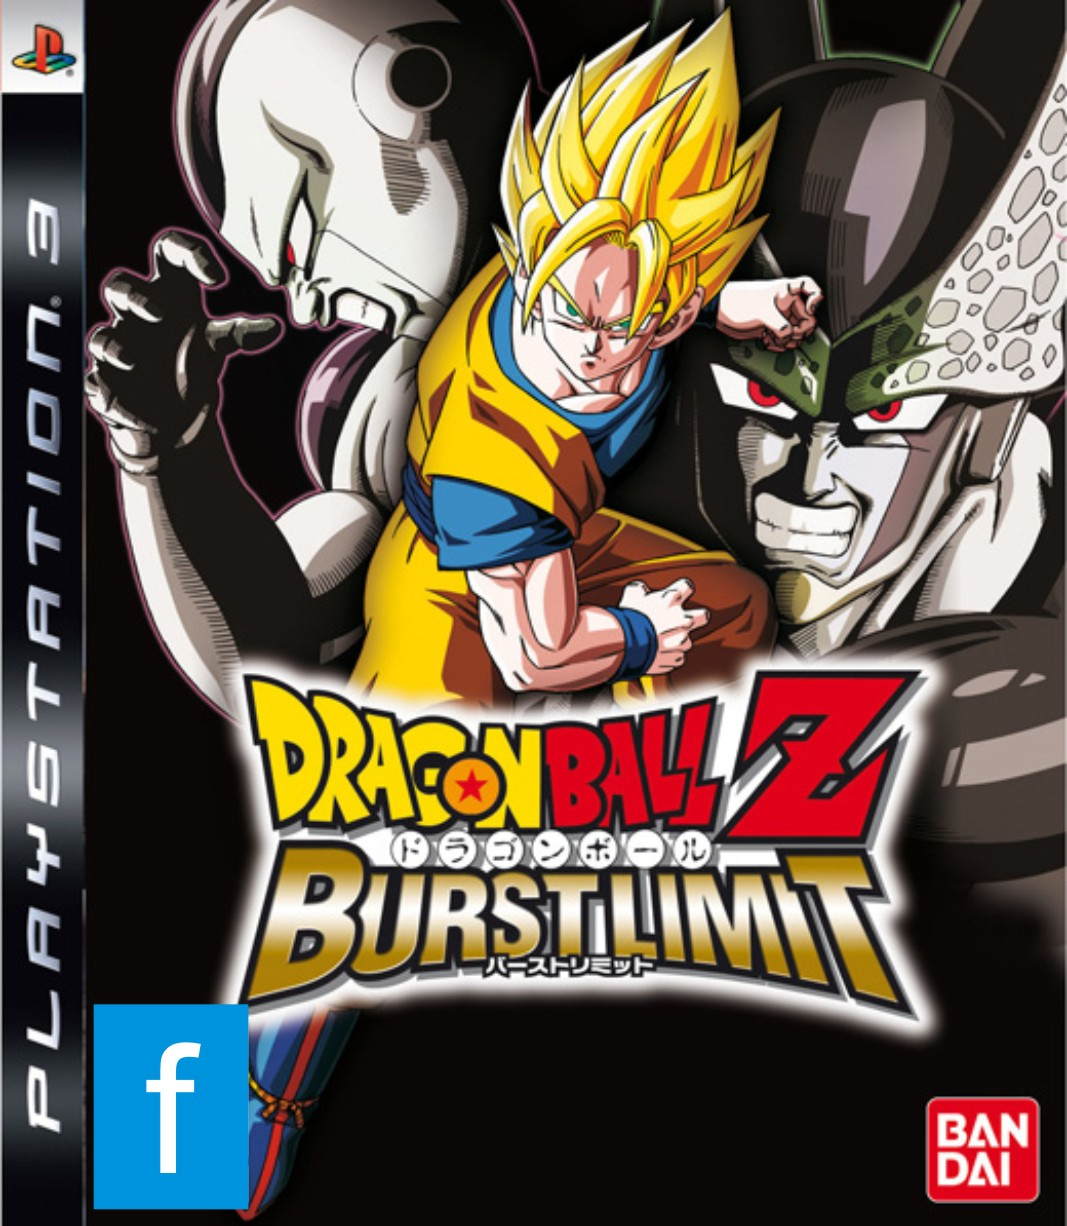 Dragon Ball Games For Ps3 : Dragonball z burst limit cfw ps iso games us